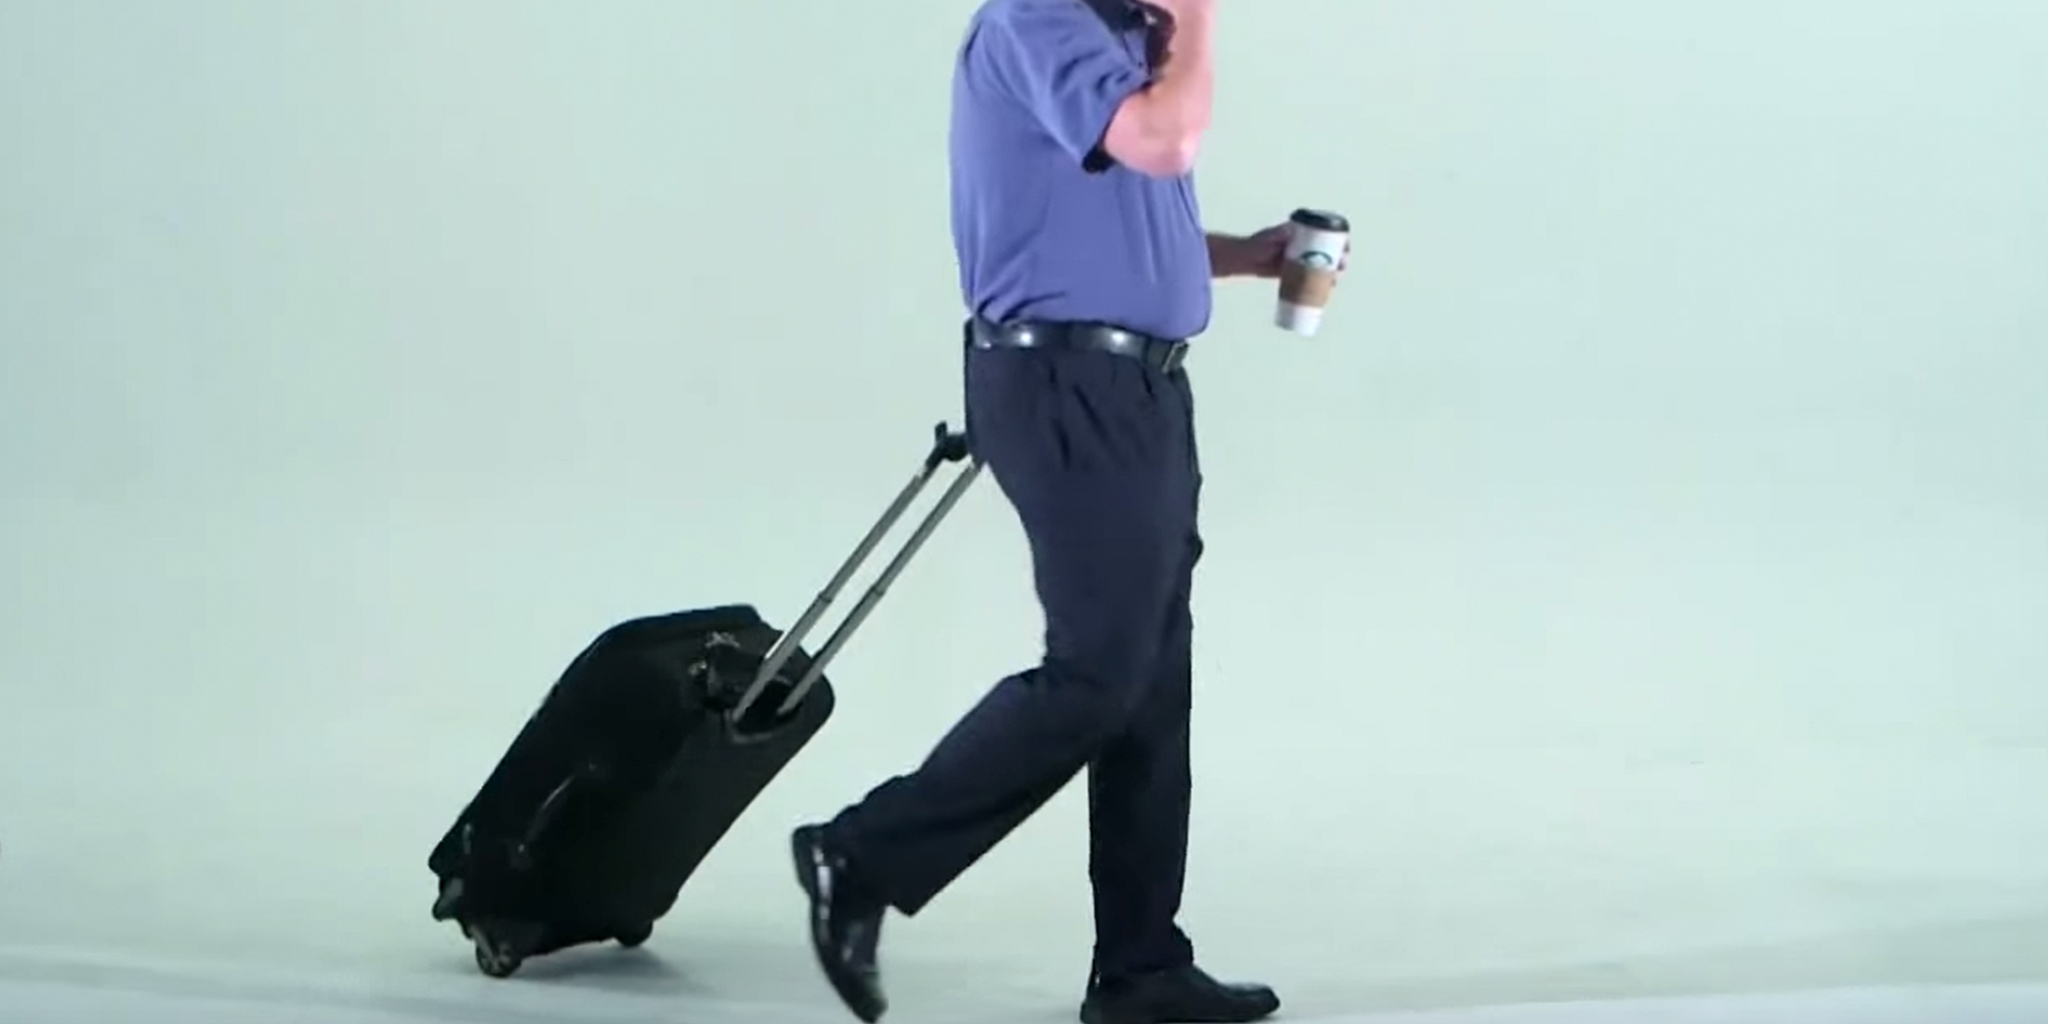 man walking with a suitcase attached to his butt